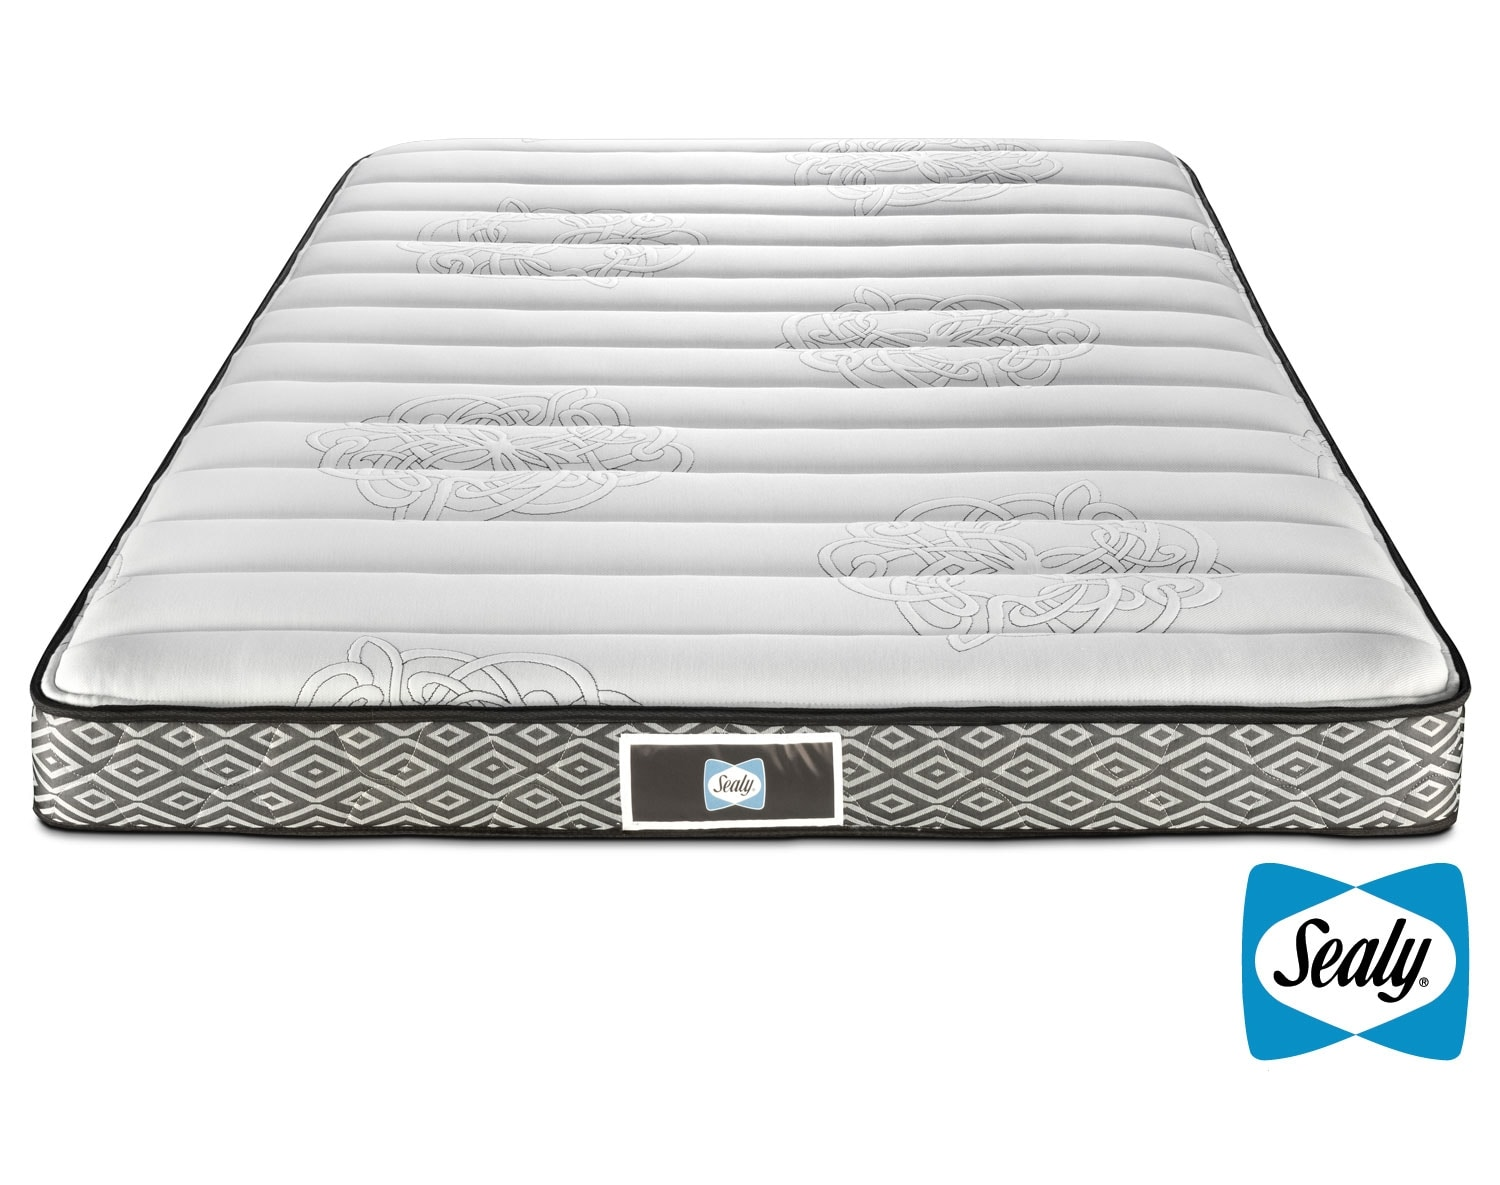 Sealy glacier queen mattress leon 39 s Queen bed and mattress